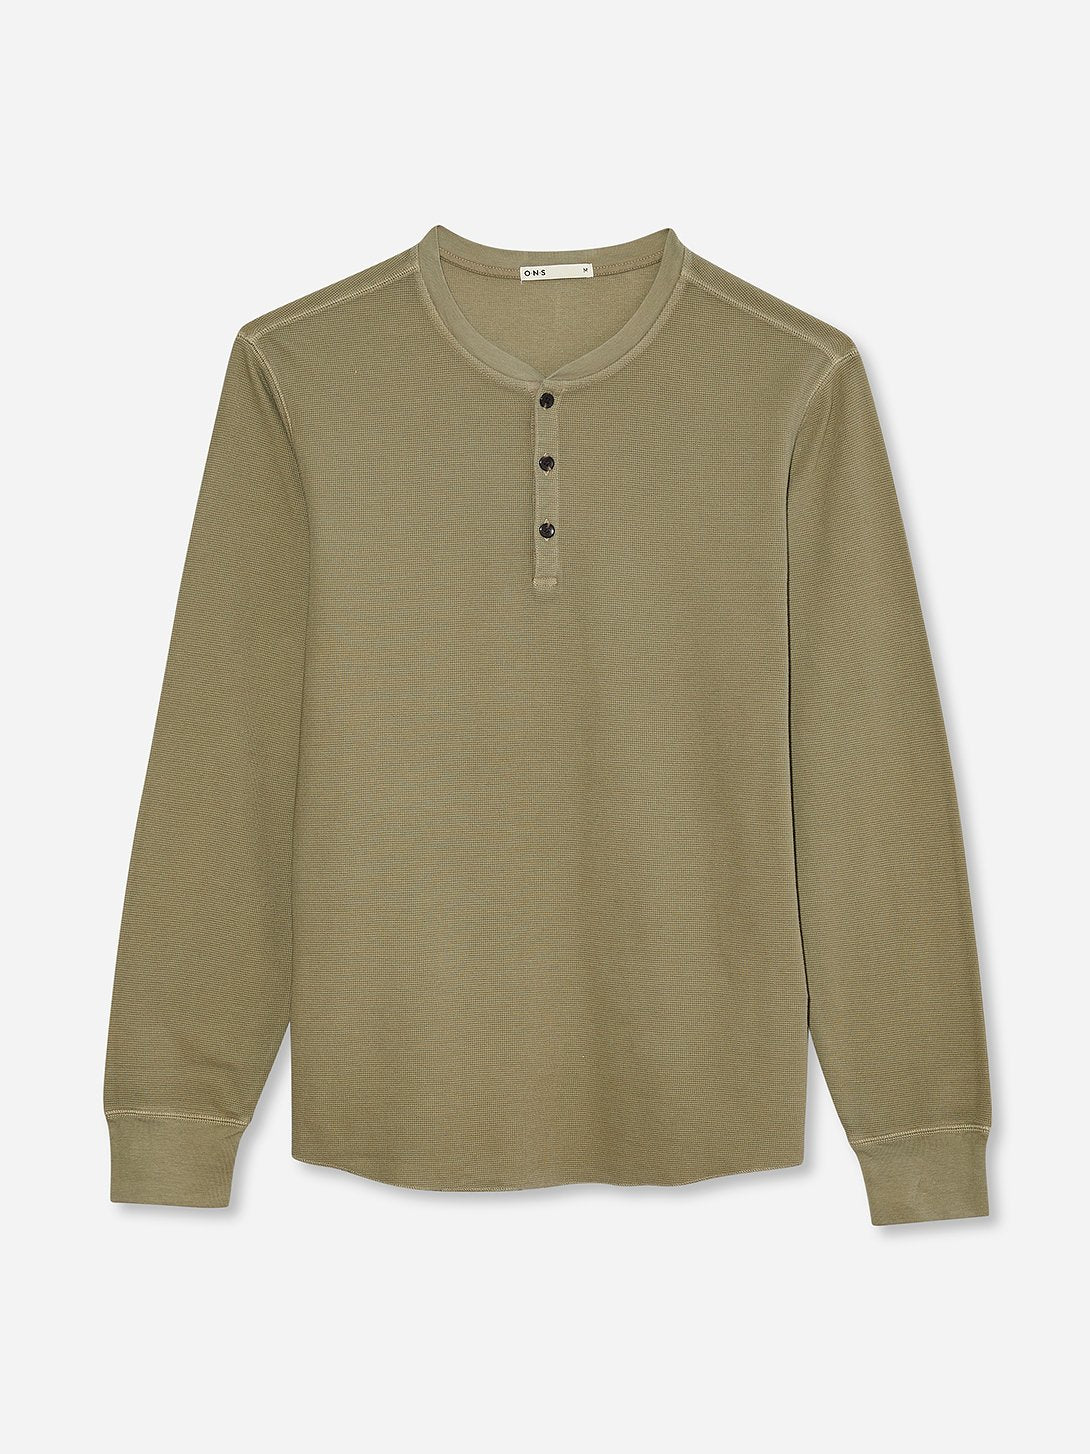 ONS Clothing Men's COURT WAFFLE HENLEY Pre-shrunk Cotton in LIGHT OLIVE GREEN